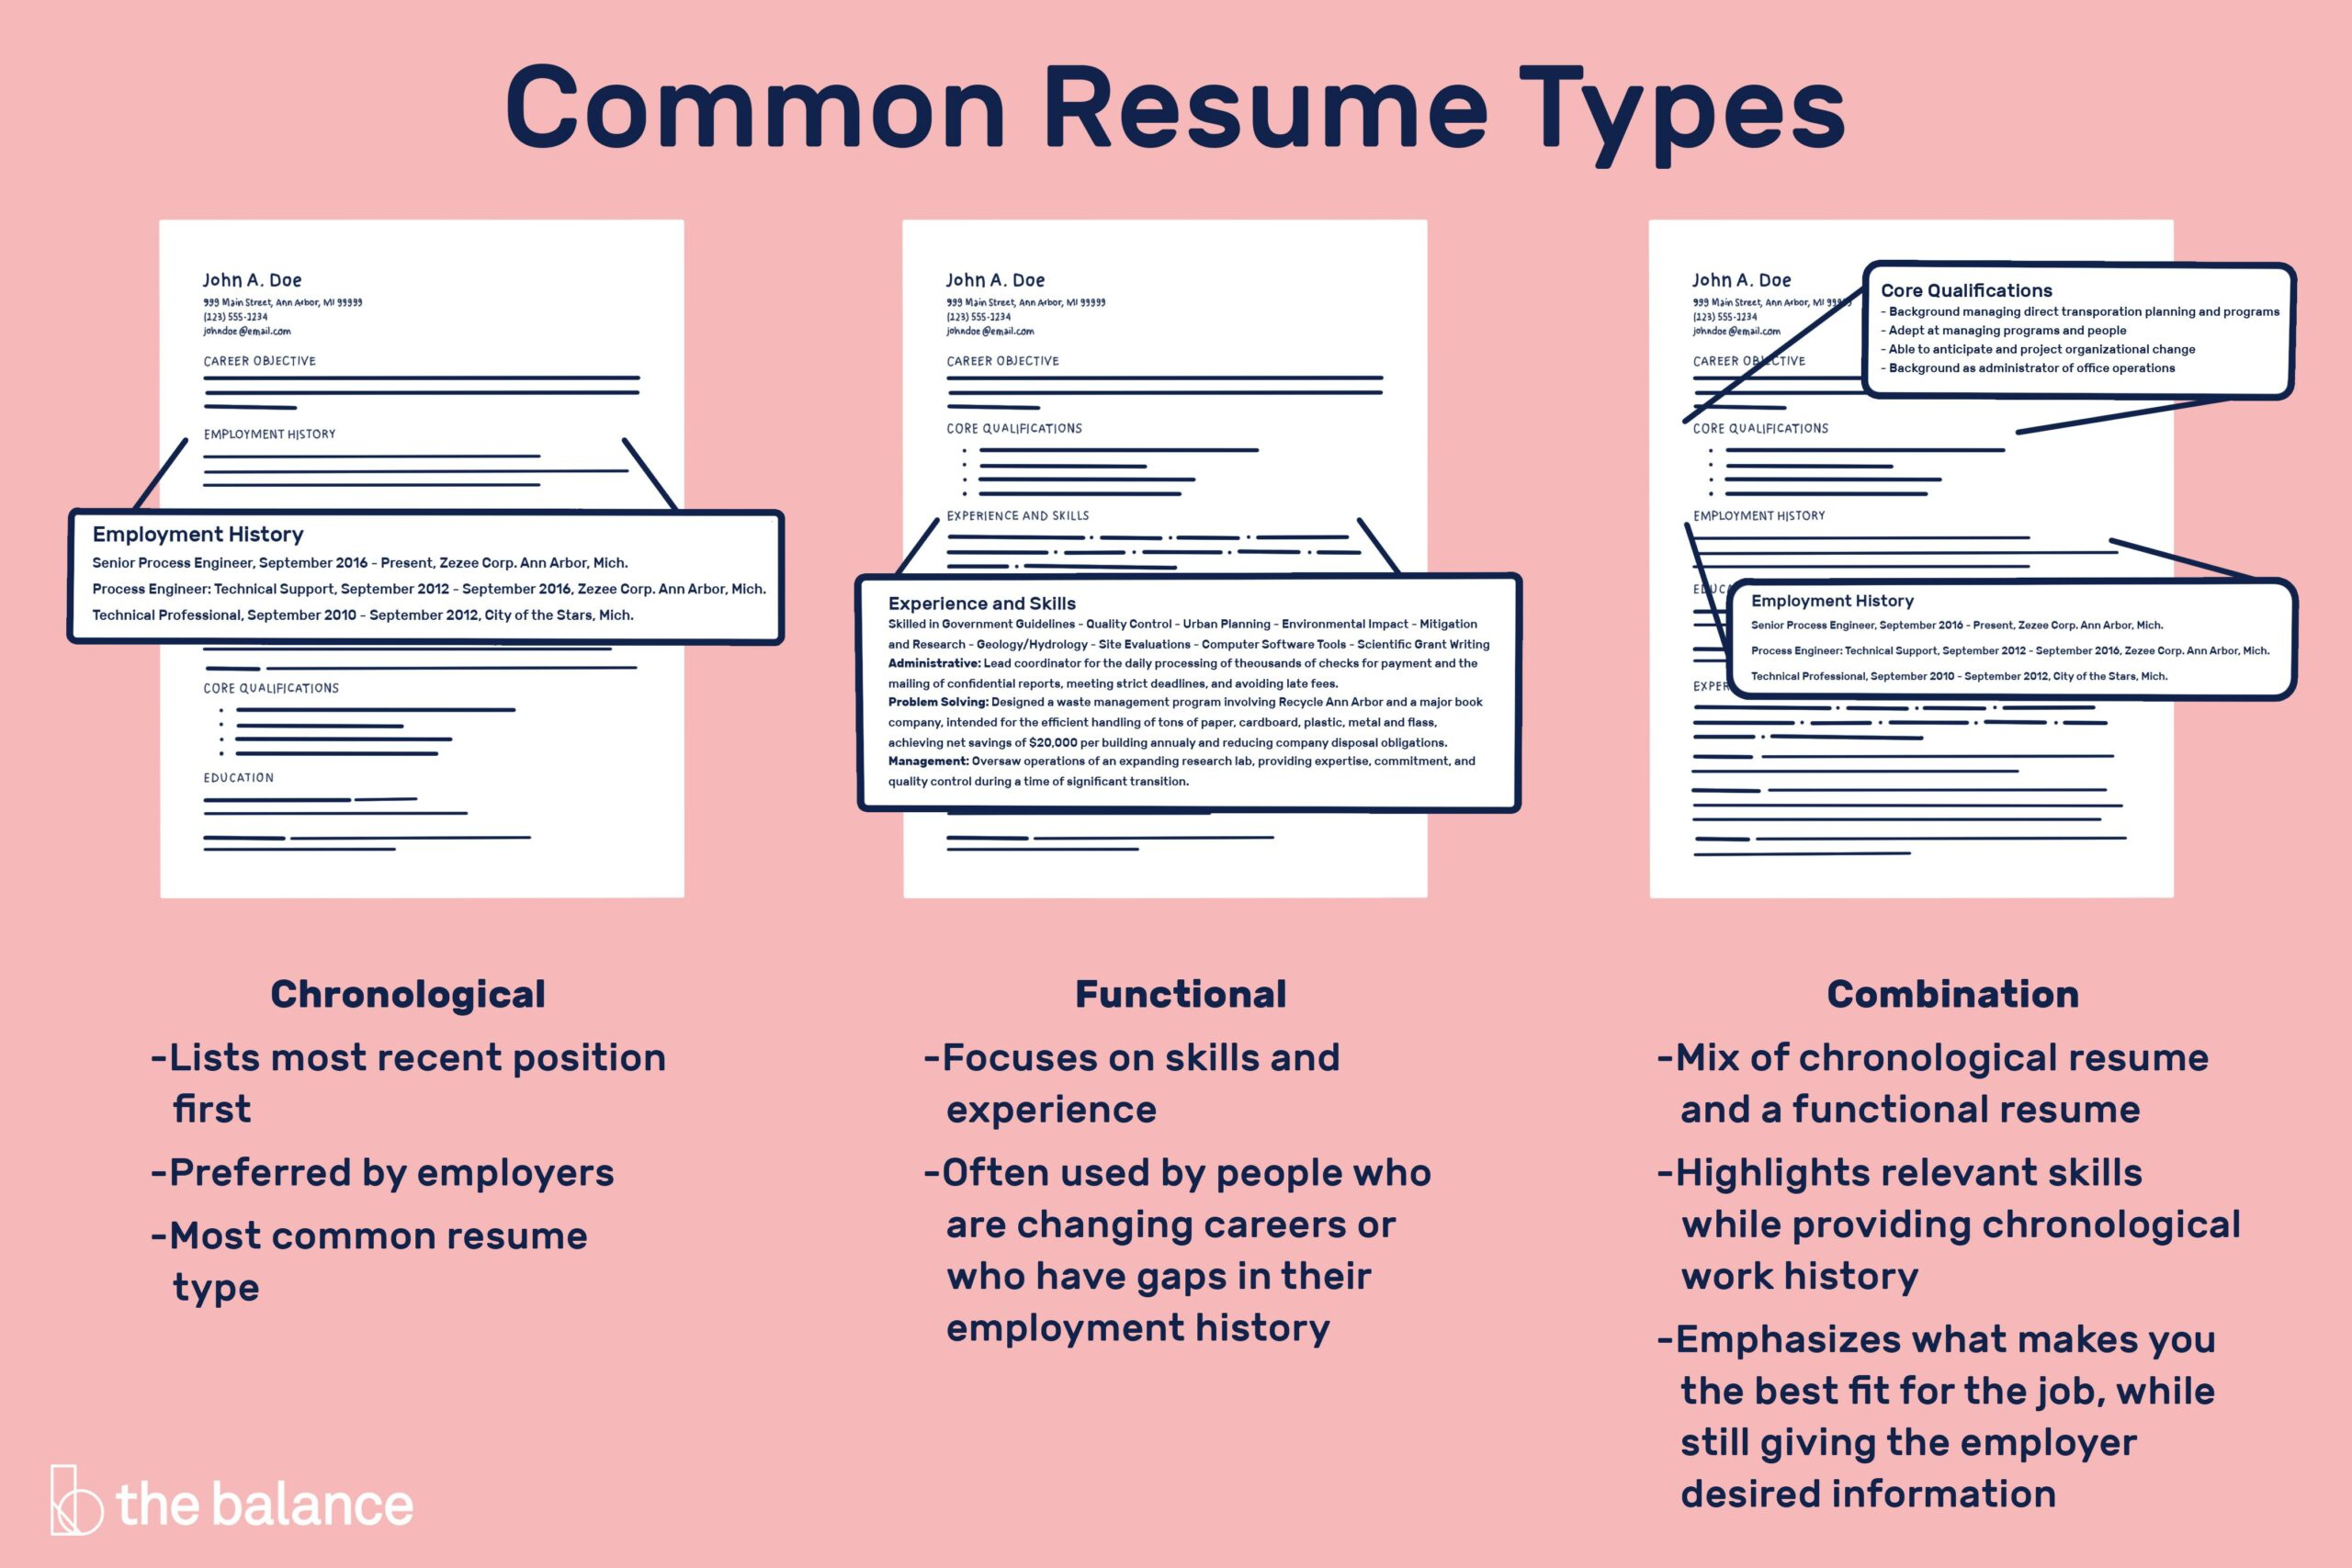 different resume types best format for work history chronological functional combination Resume Best Resume Format For Long Work History